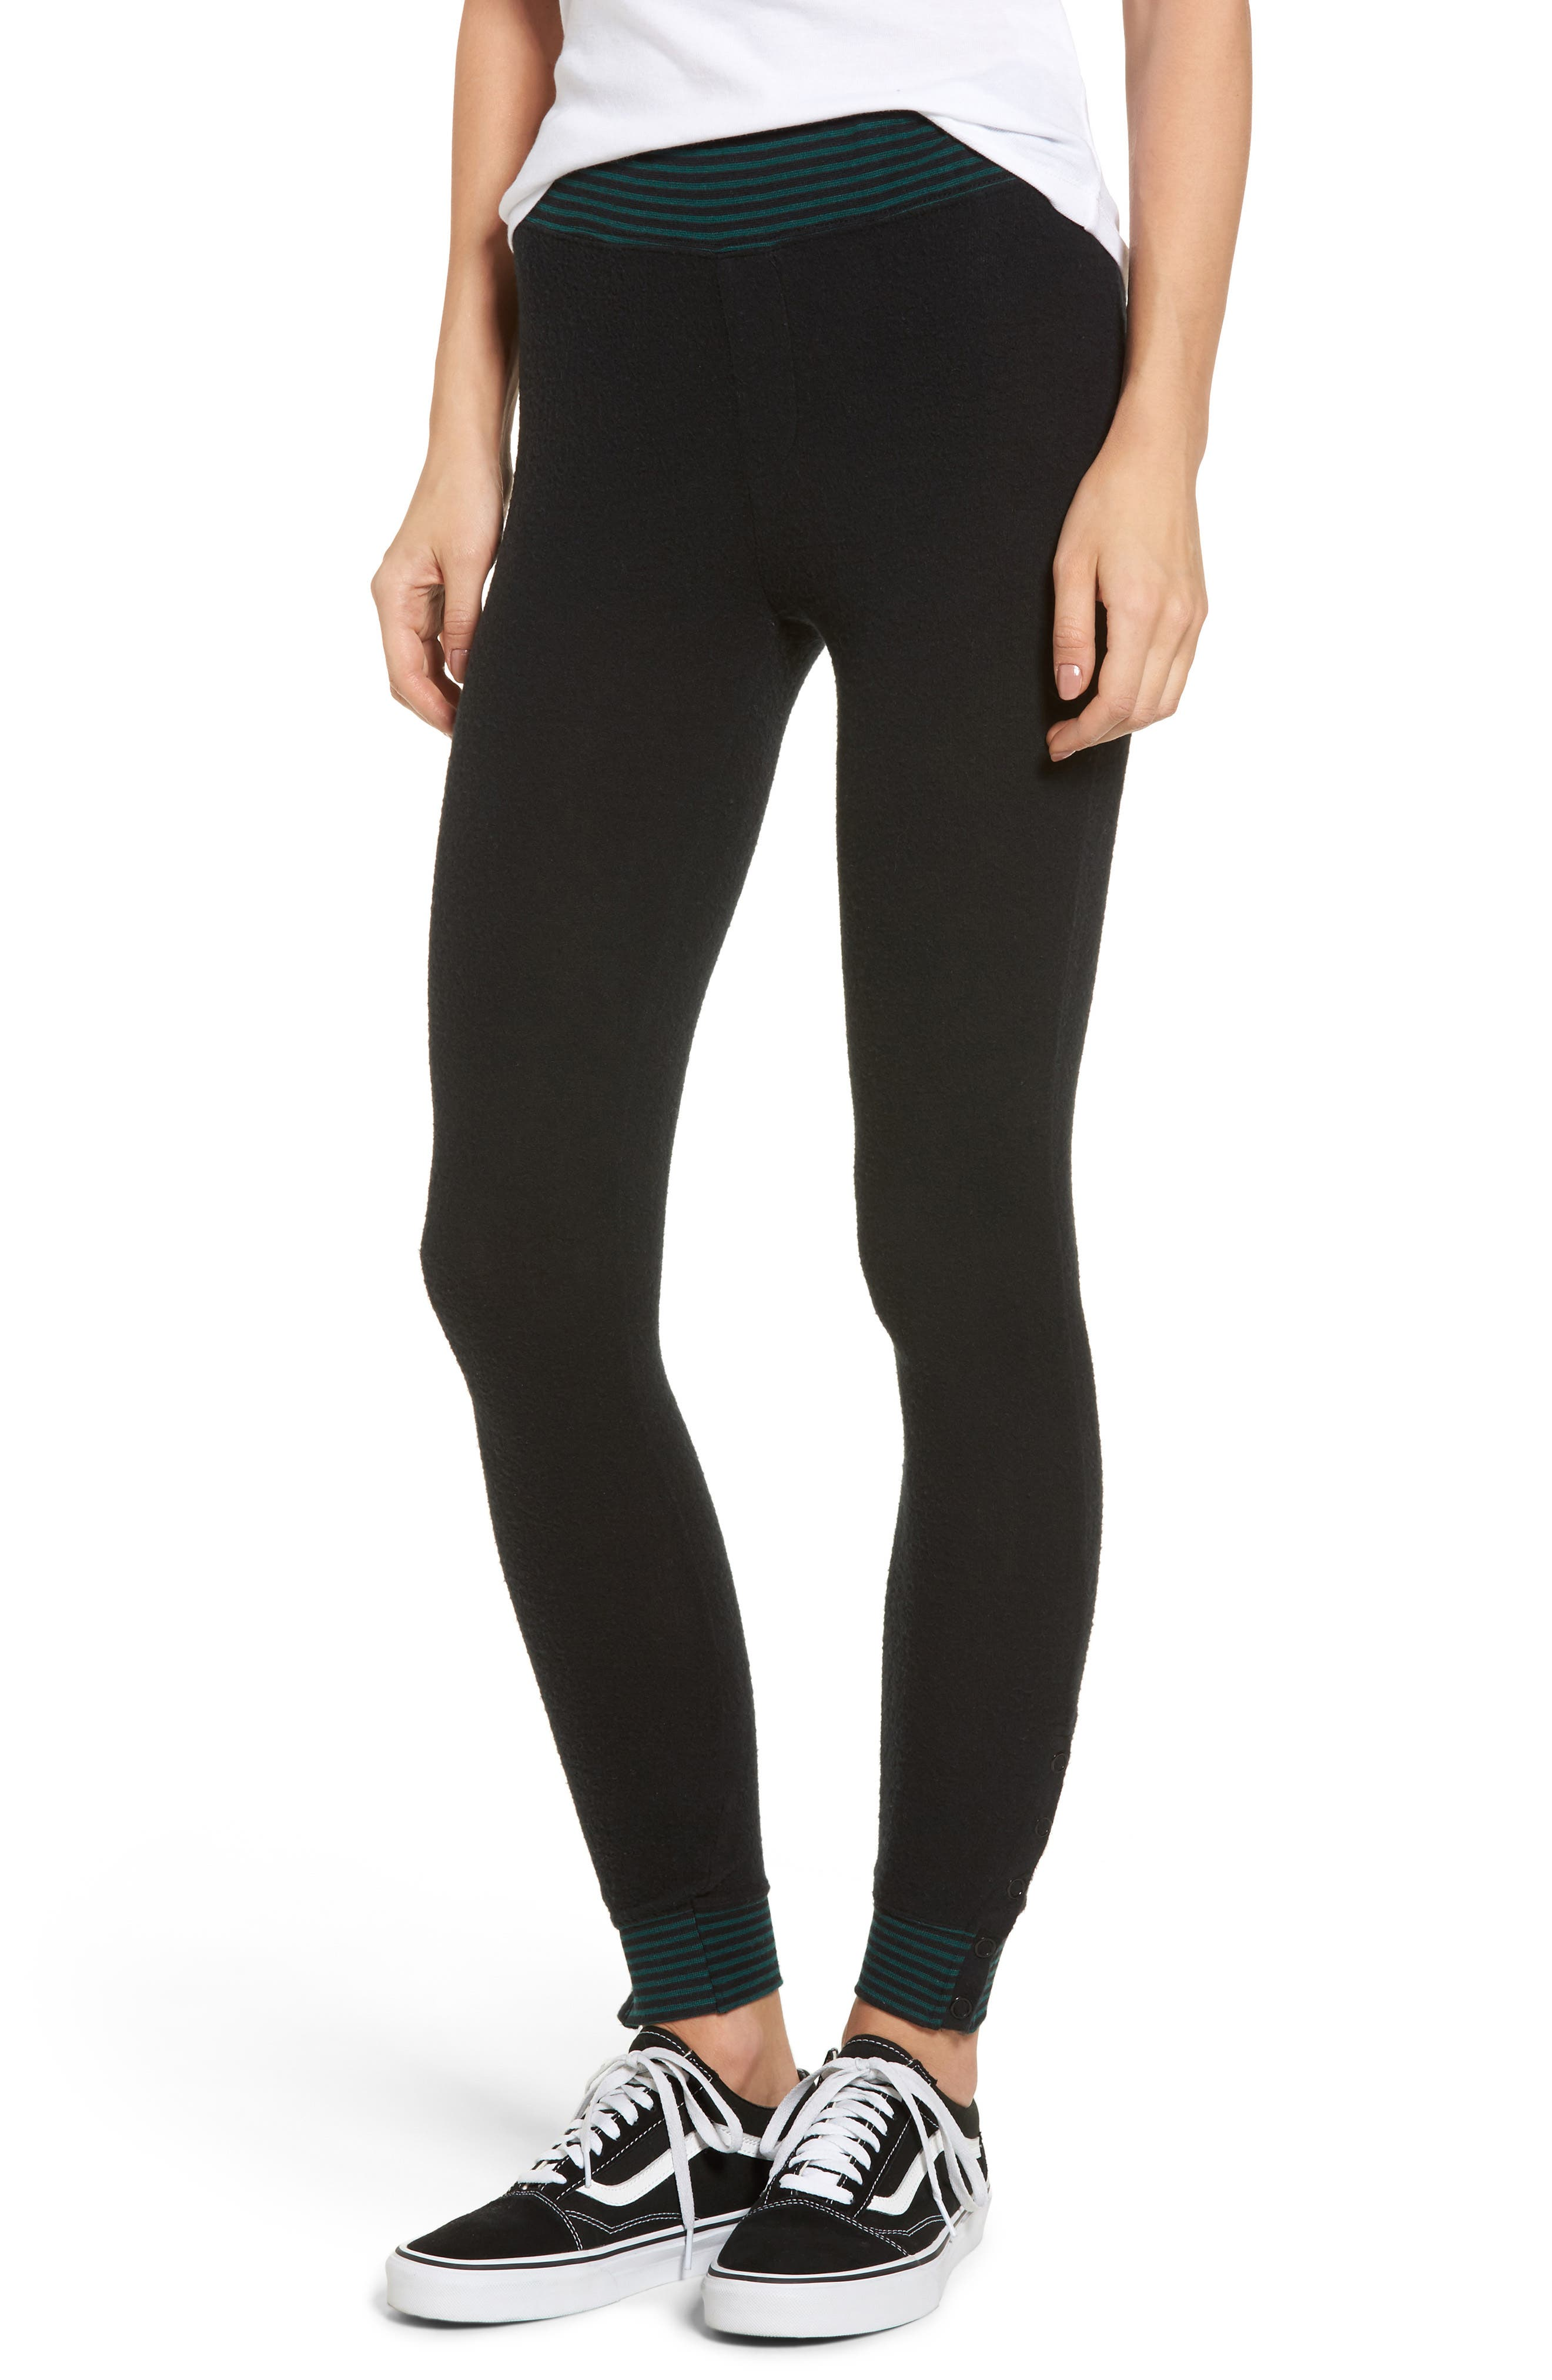 'Laid Back' Ankle Snap Leggings,                         Main,                         color, Black/ Green